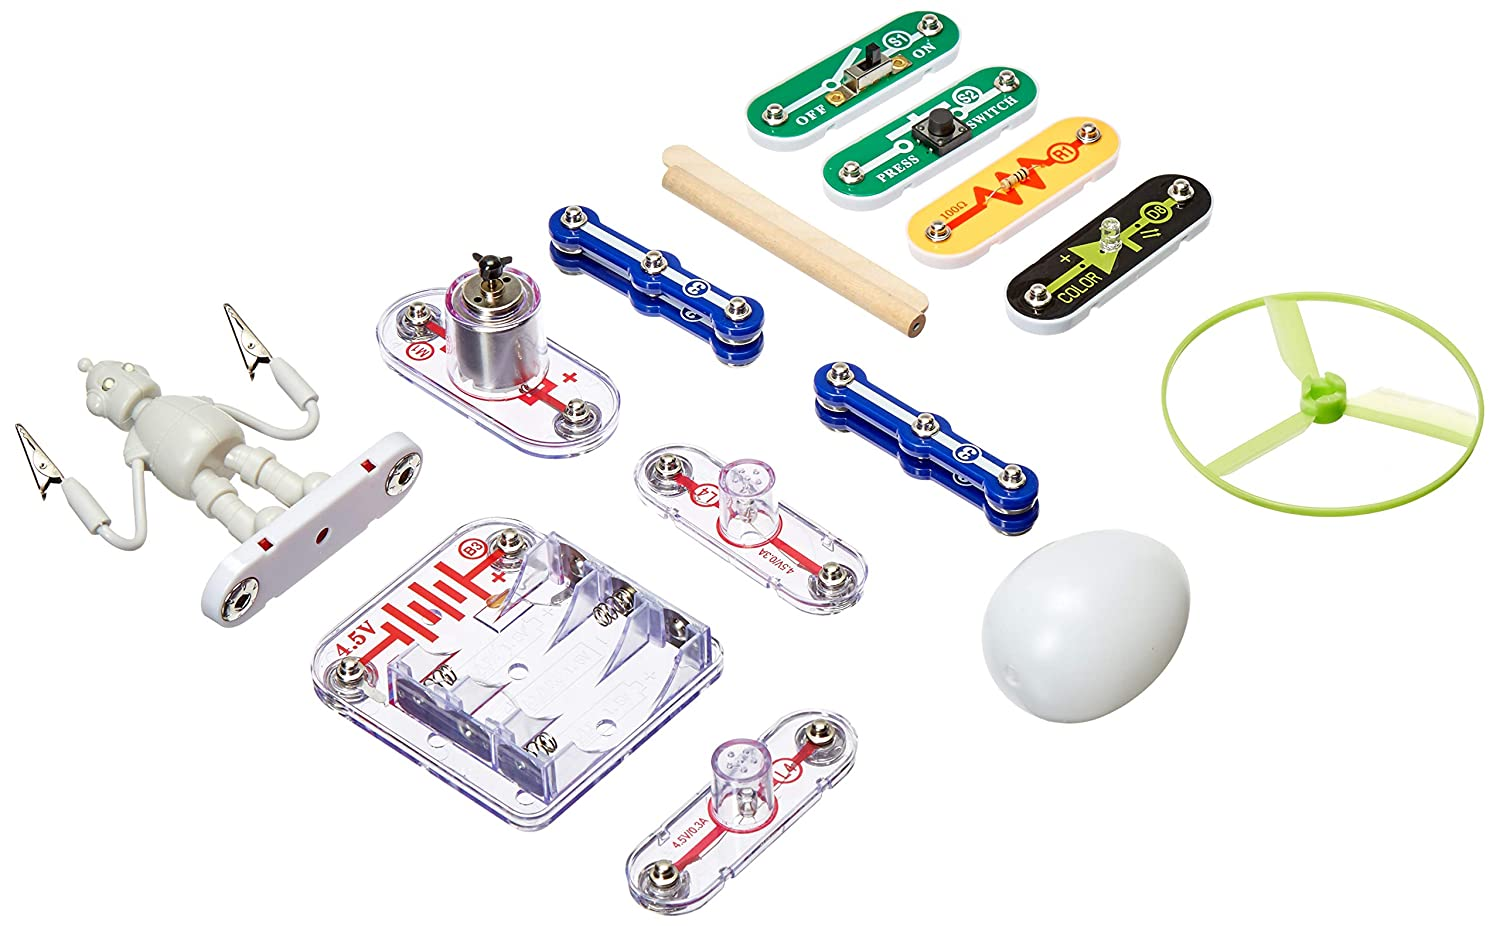 Learn about Electricity Snap Circuits Power Gifts for Girls /& Boys Educational Toy 19 Stem Experiments /& Activities STEM Authenticated ETA hand2mind 90741 Light Up A Robot Kids Science Kit Children /& Teens